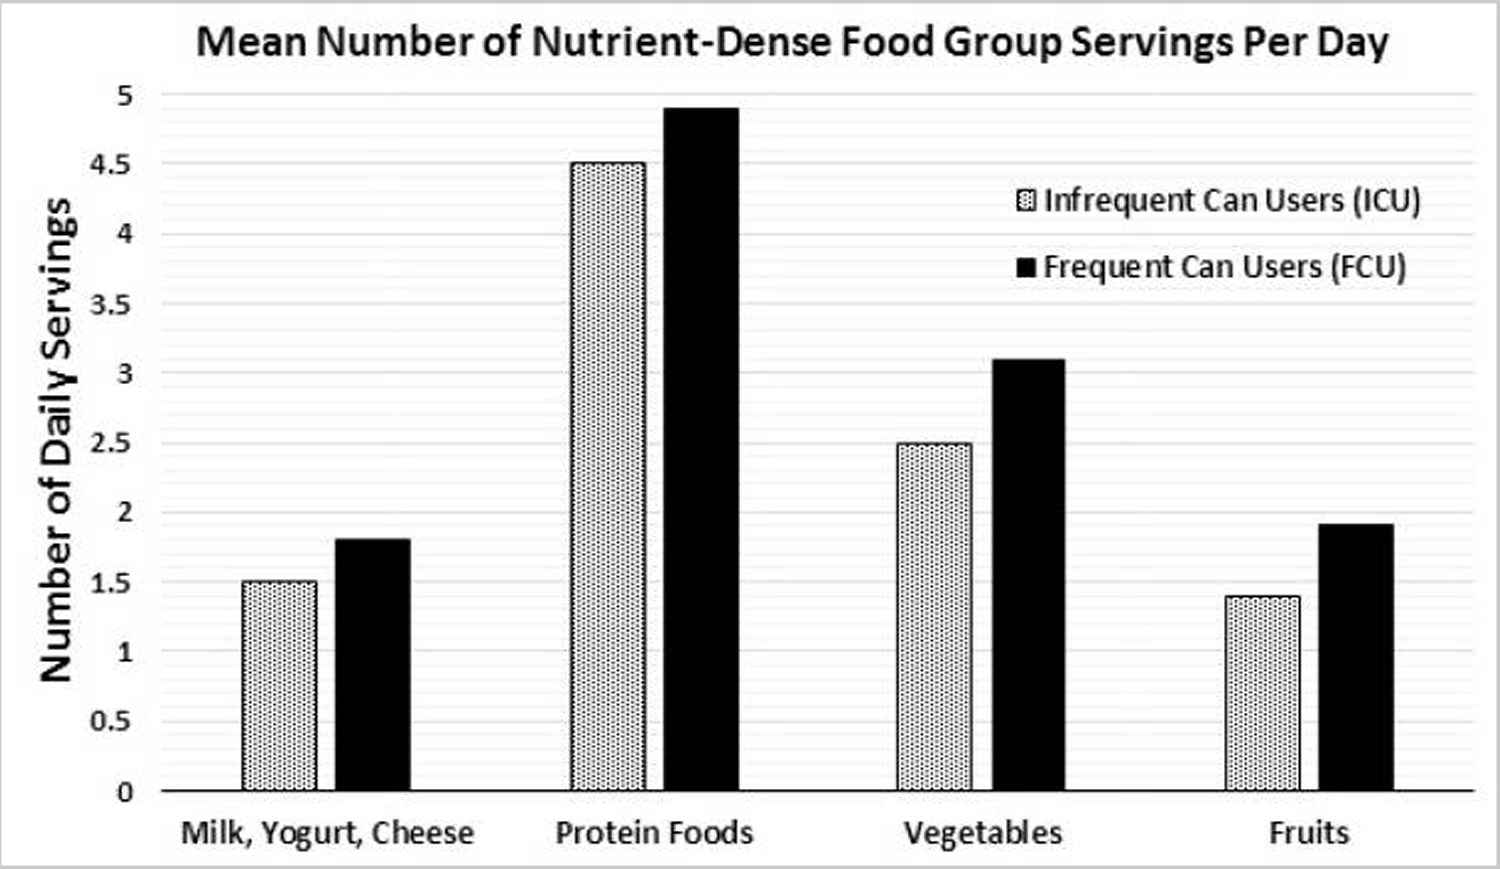 Mean number of nutrient-dense food group servings per day among canned foods and non-canned food users